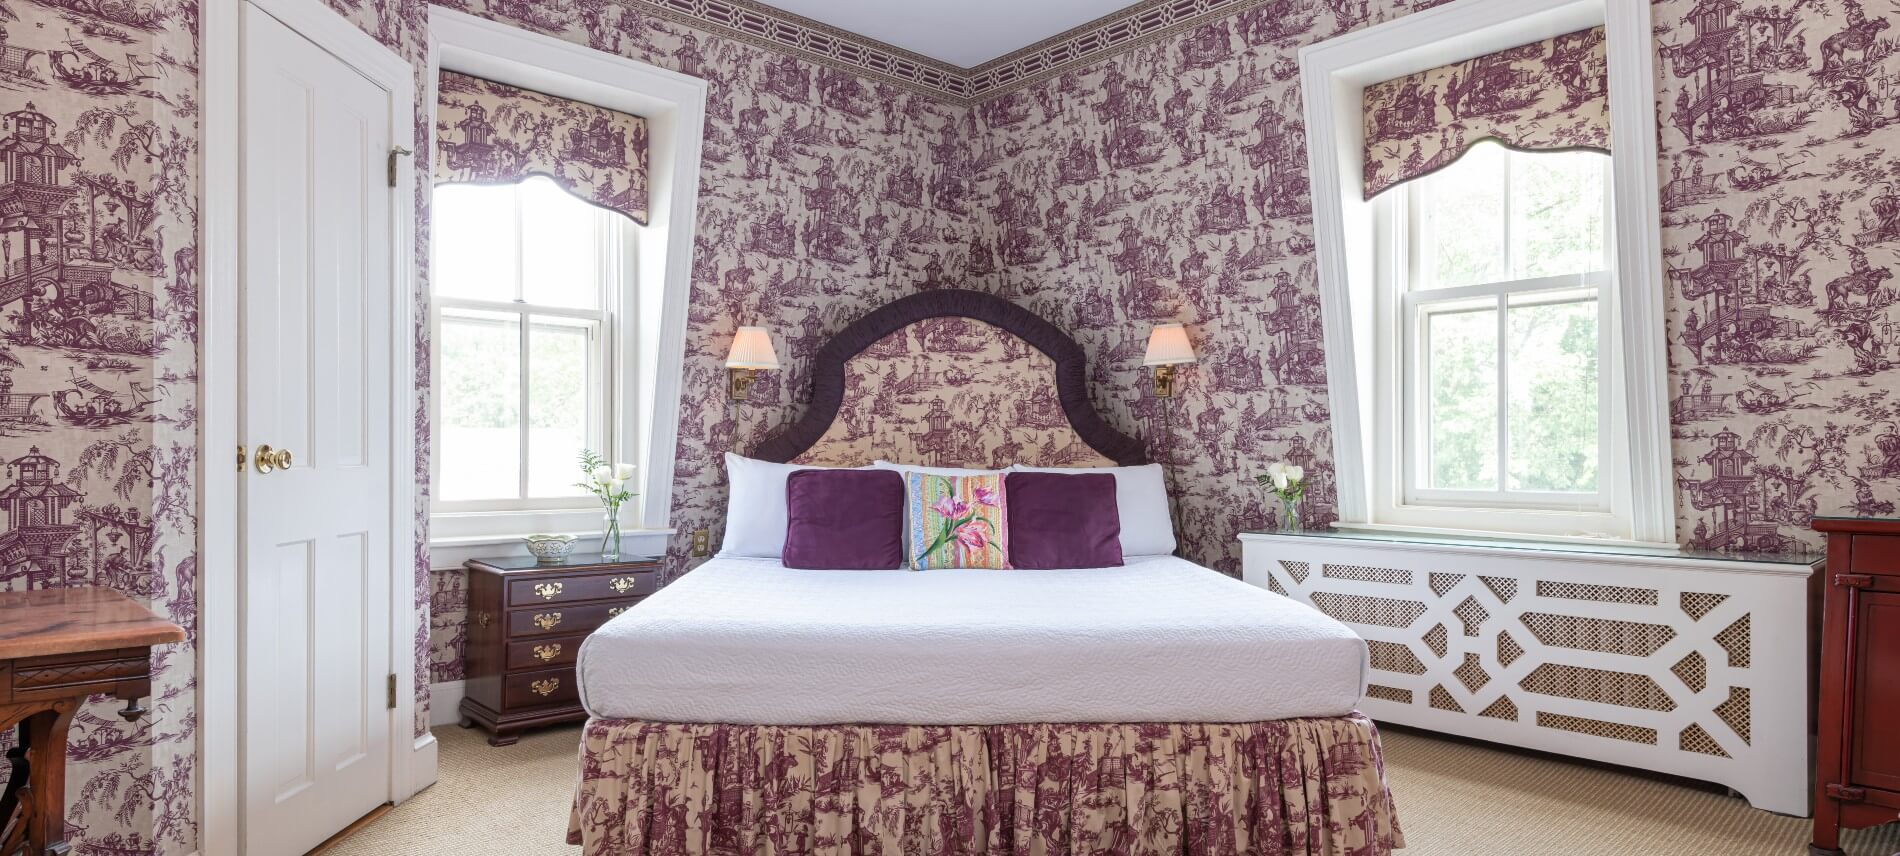 King sized bed with a purple coverlet in a lavishly wall-papered room